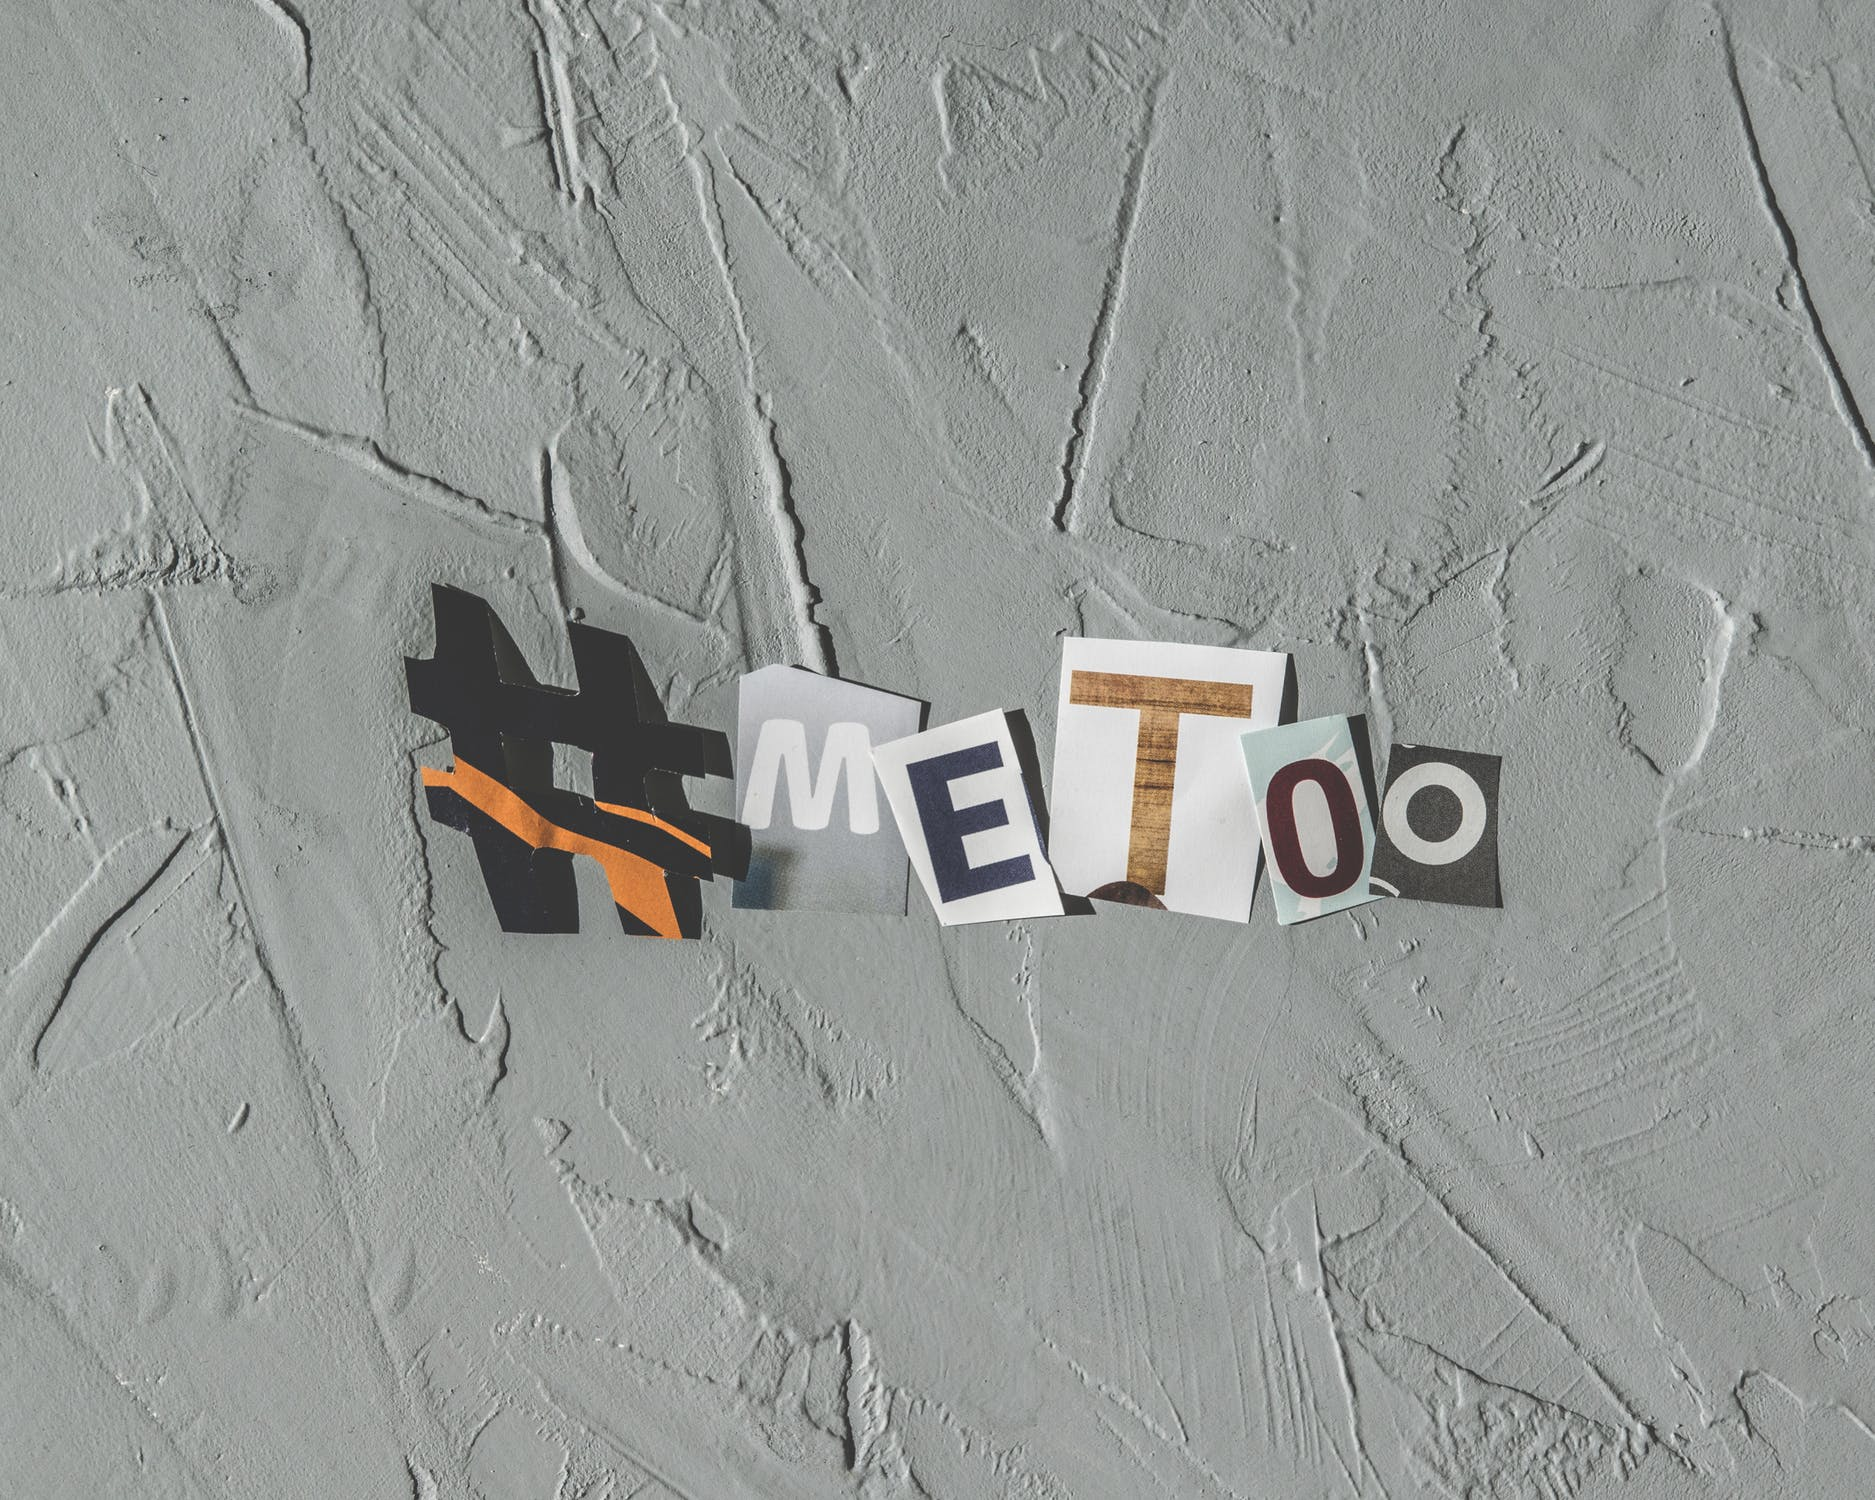 Why Innocent Men Have to be Worried About the #MeToo Movement